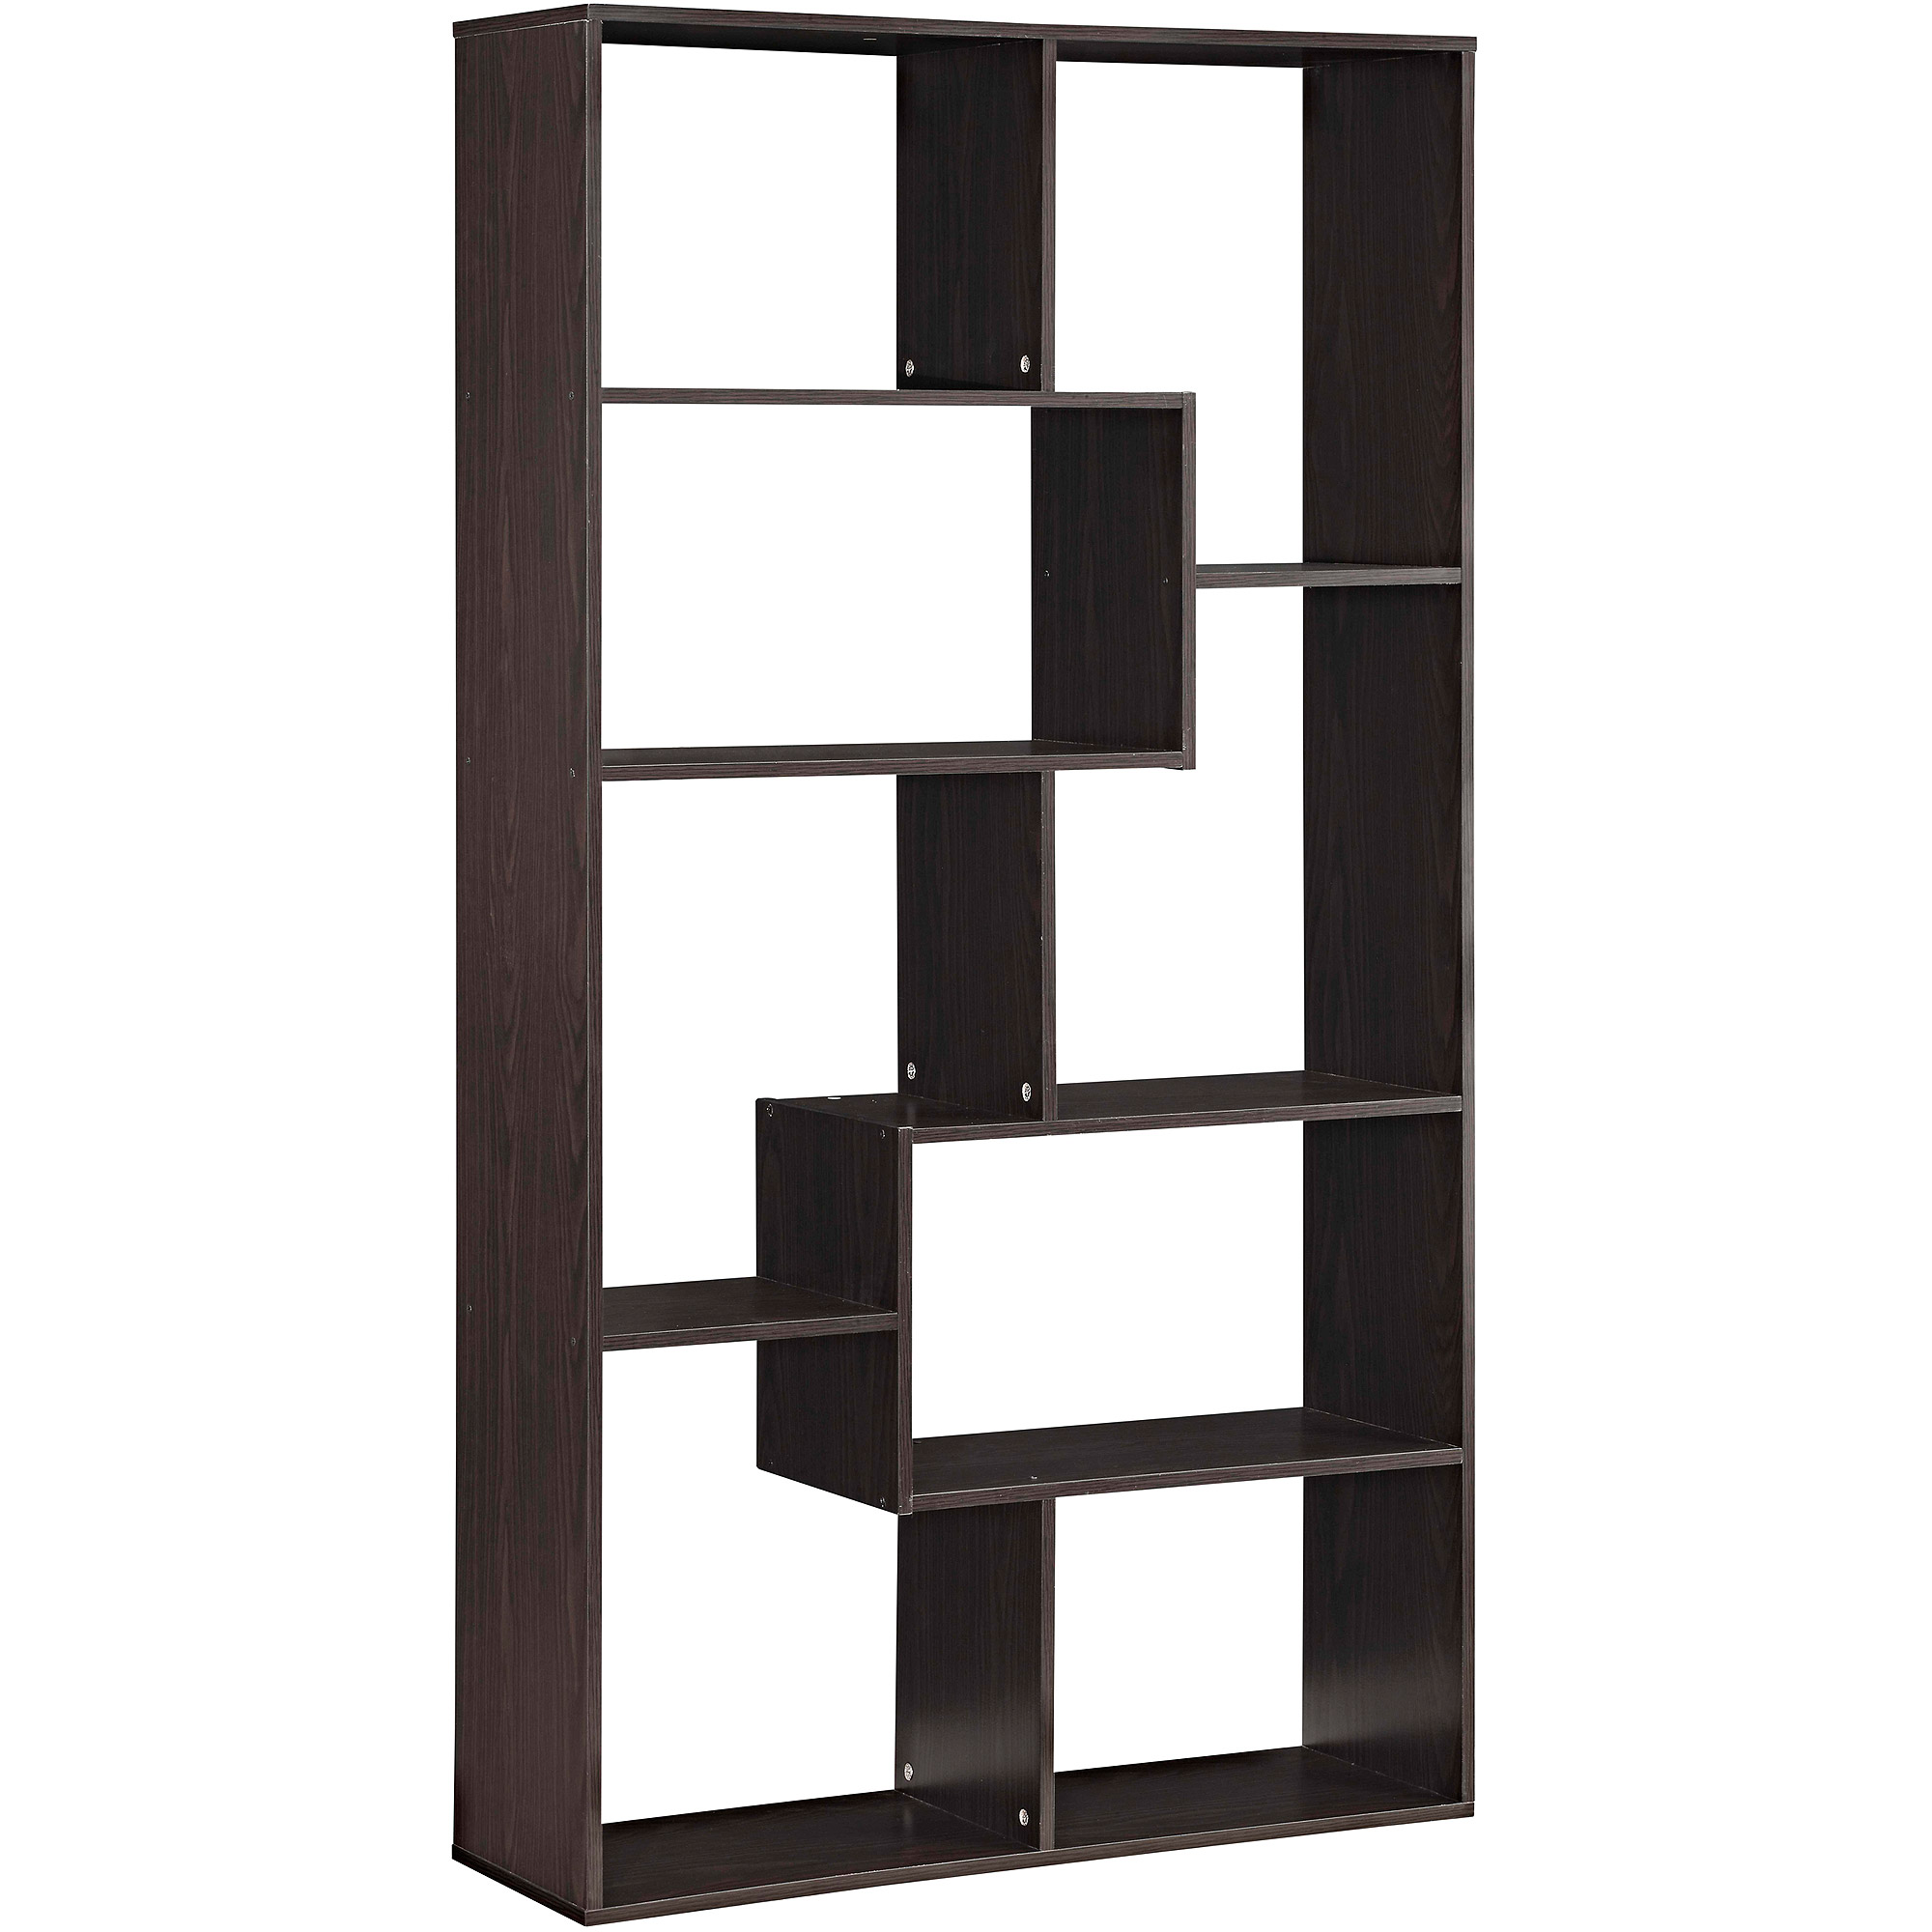 milder furniture bookcase high to with back office walls on partitions both and in create shelving dividers add compartments bookcases are storage sides open deep your shelves workspace products